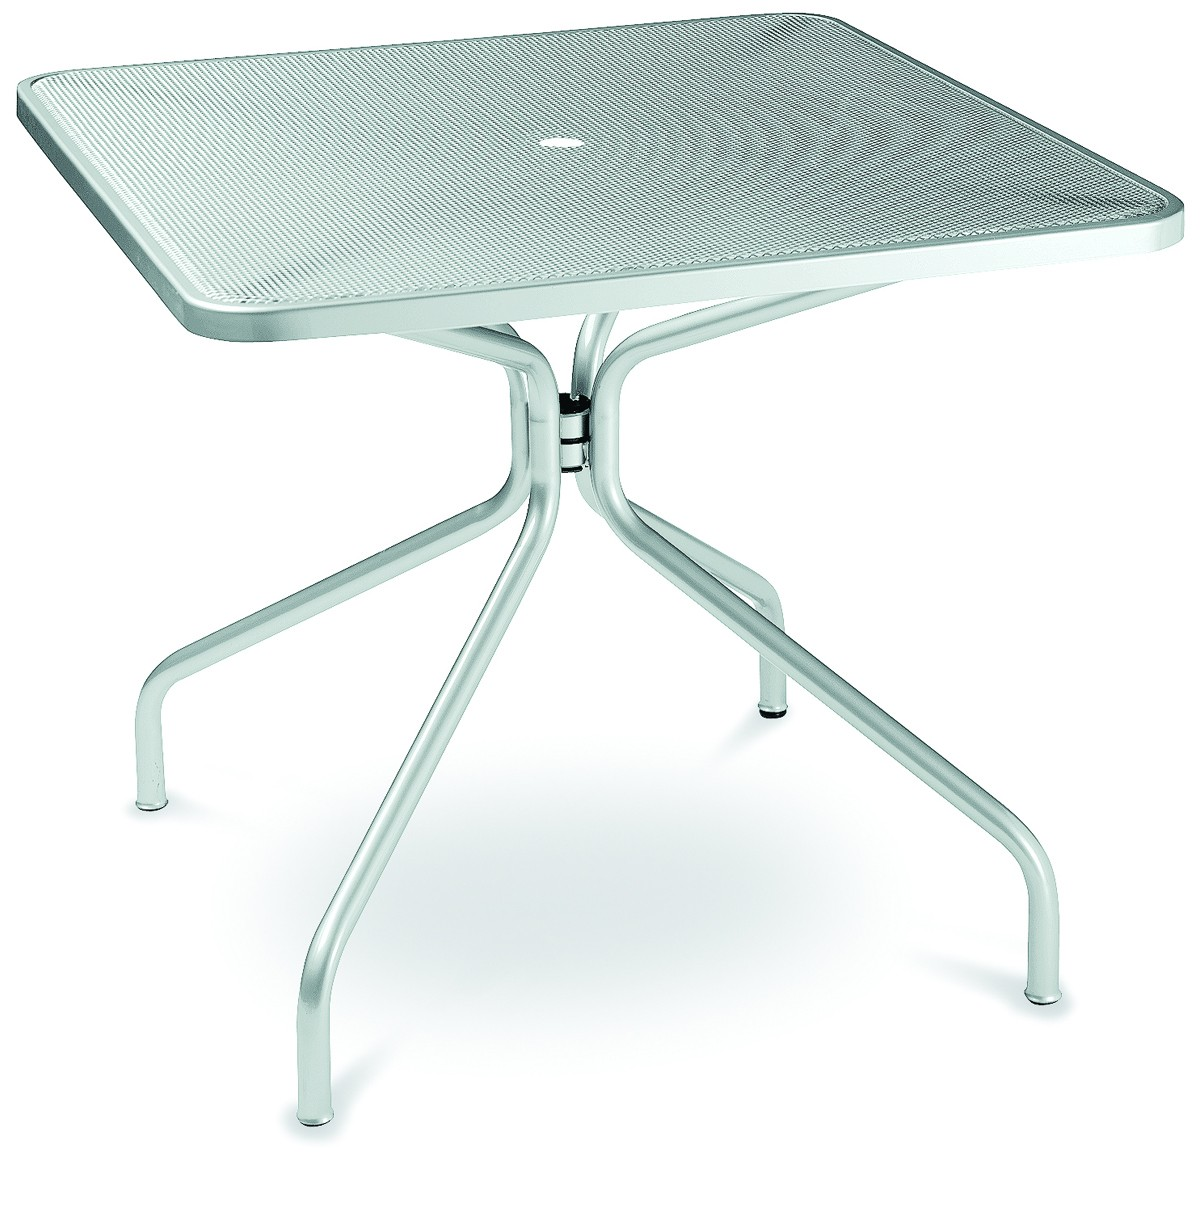 Table Carrée Aluminium Table Carrée Cambi De Emu Aluminium